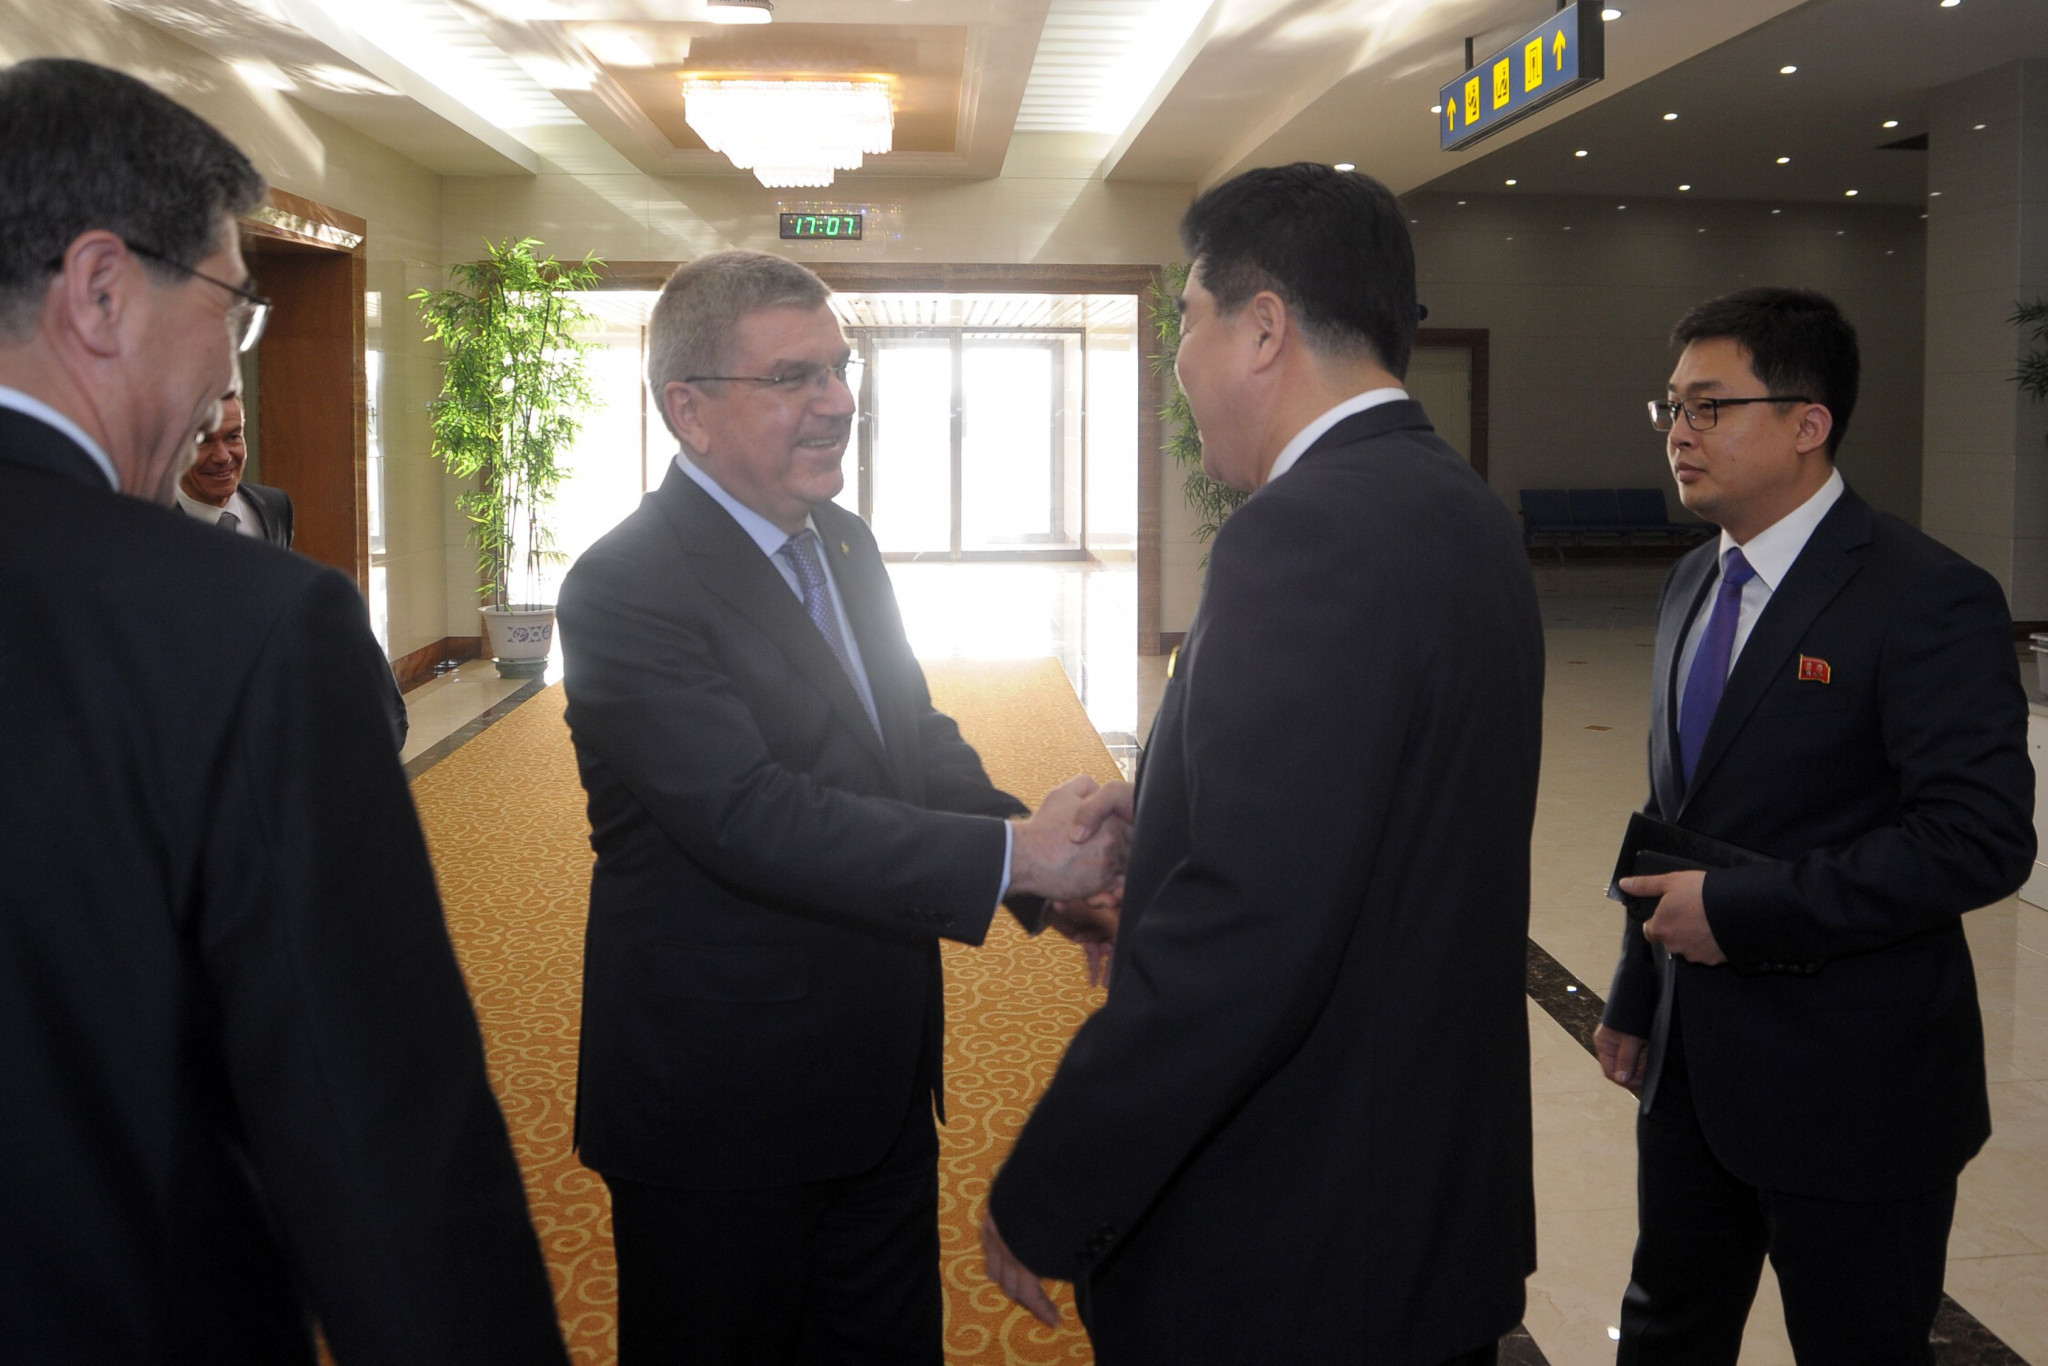 IOC President Thomas Bach meets North Korea's Sports Minister Kim Il Guk ©Getty Images